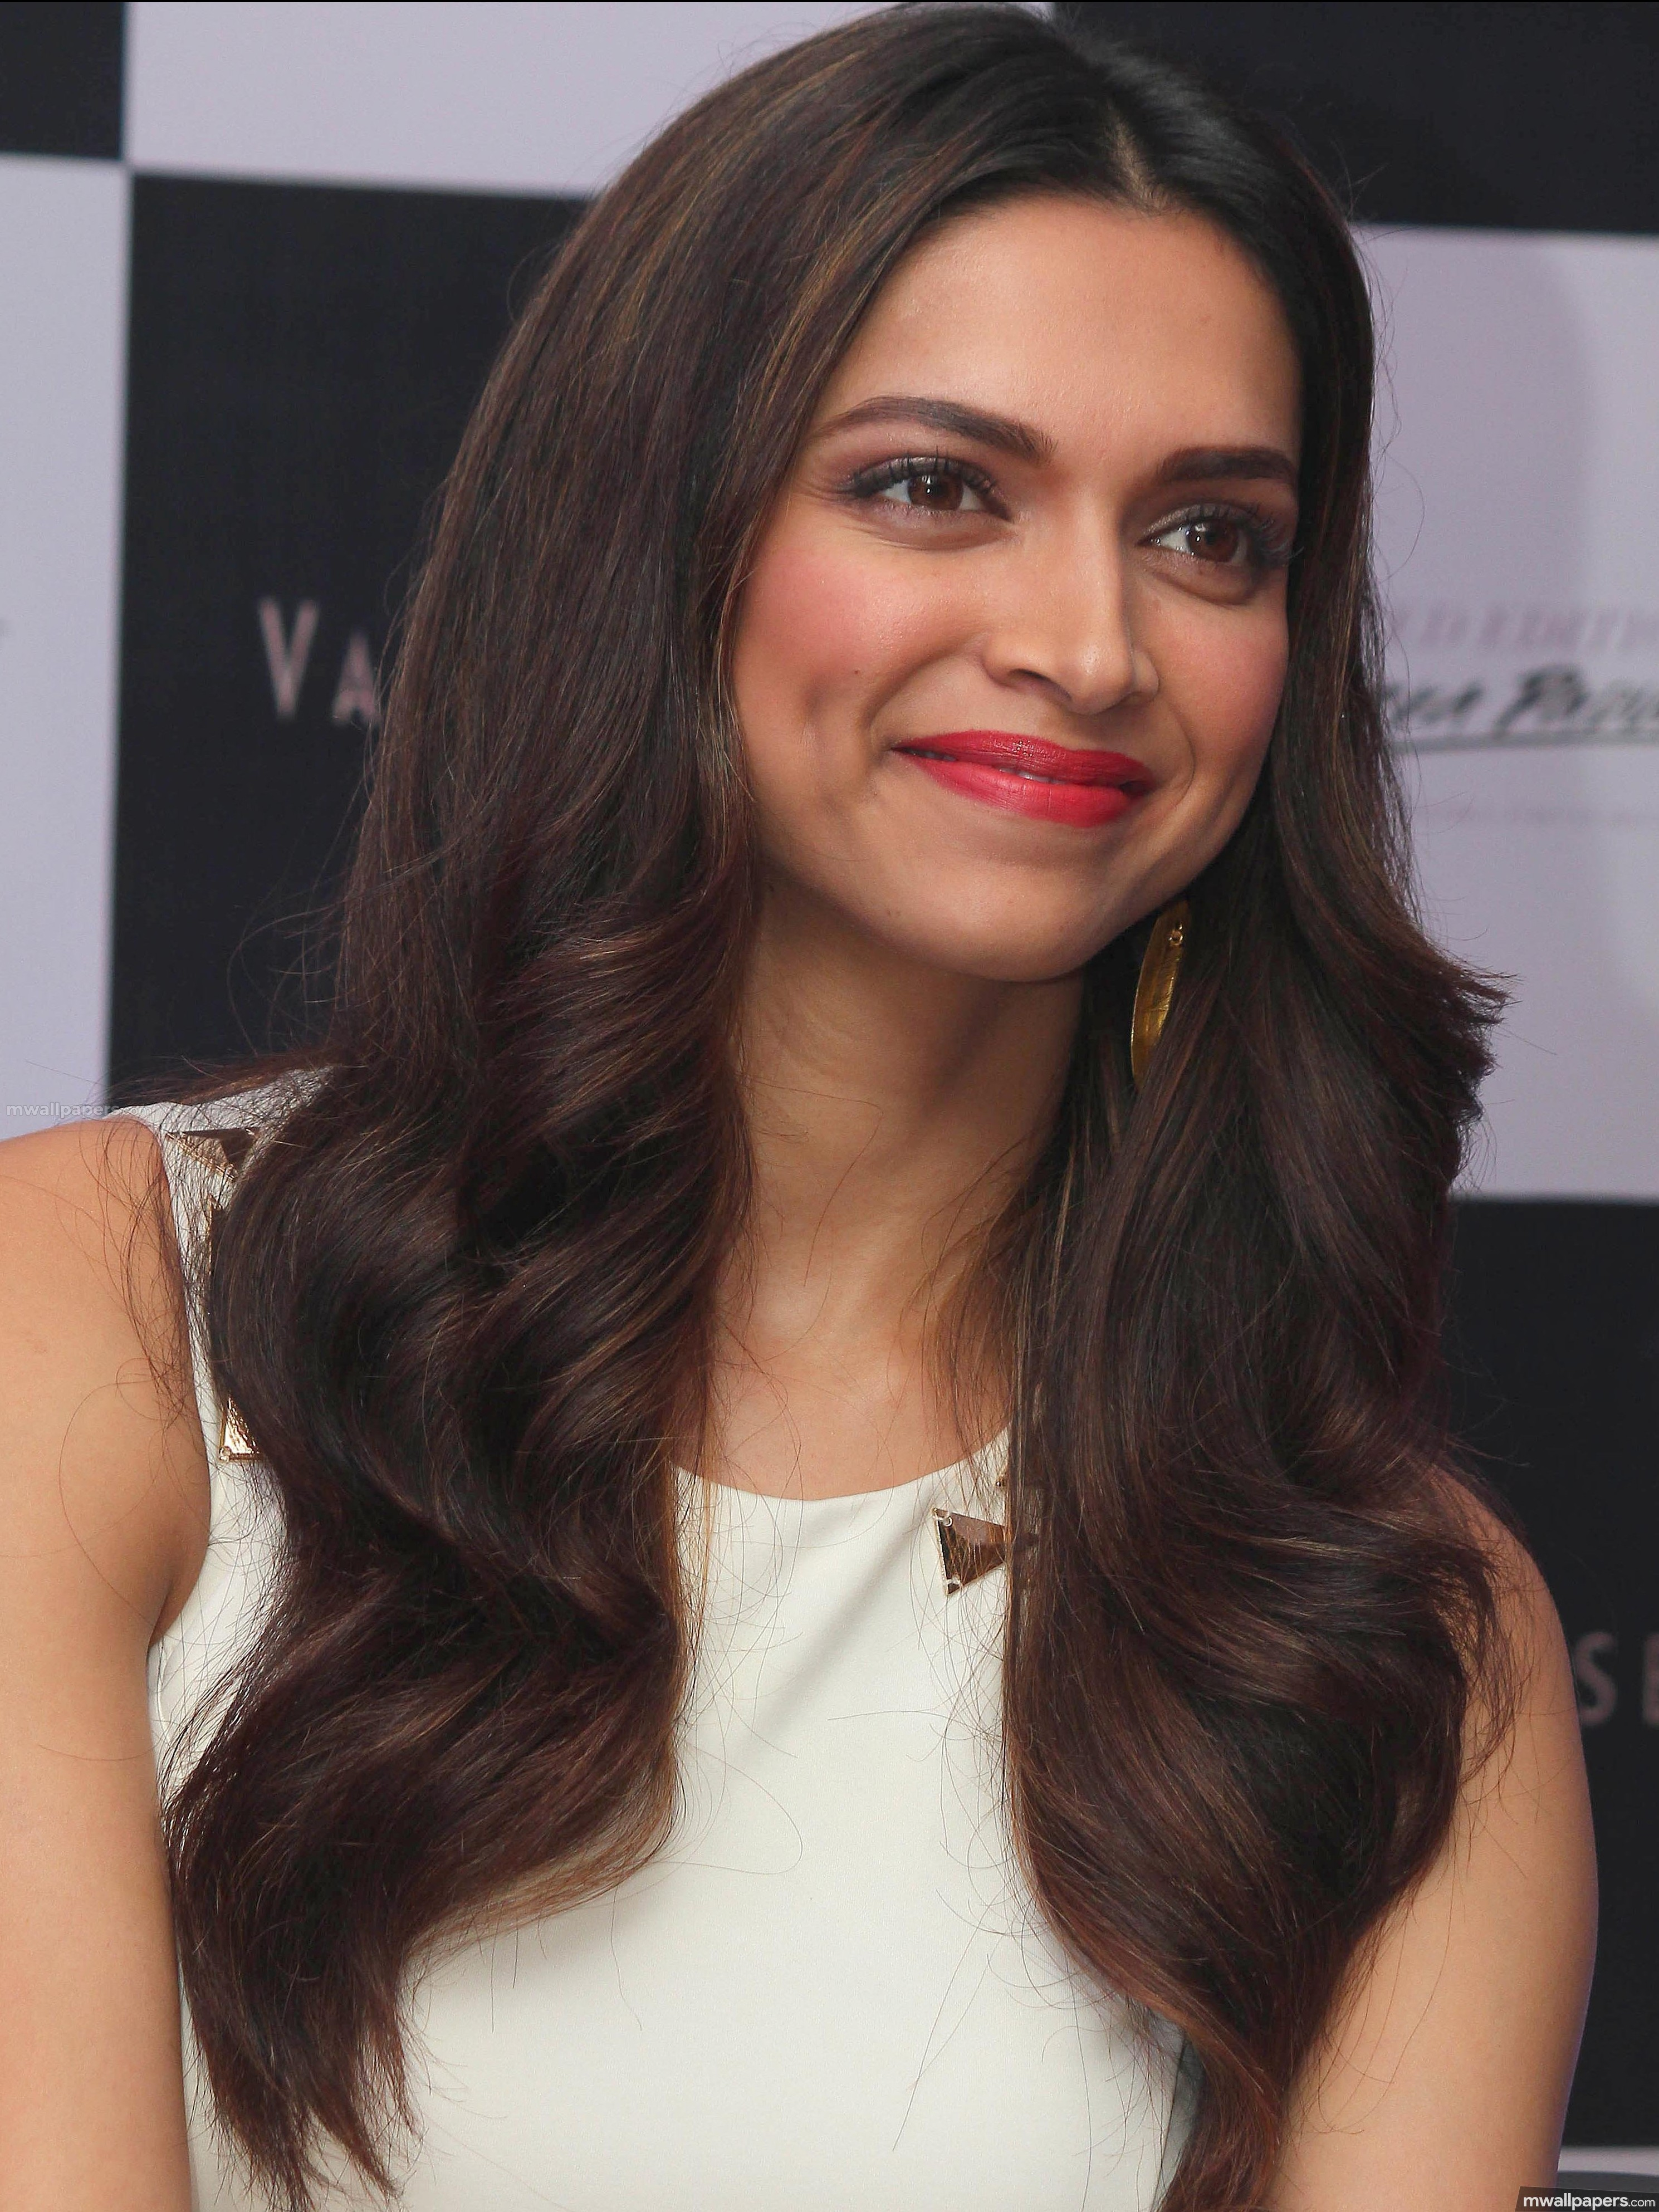 660 Deepika Padukone Beautiful Hd Photoshoot Stills 1080p 2979x3972 2020